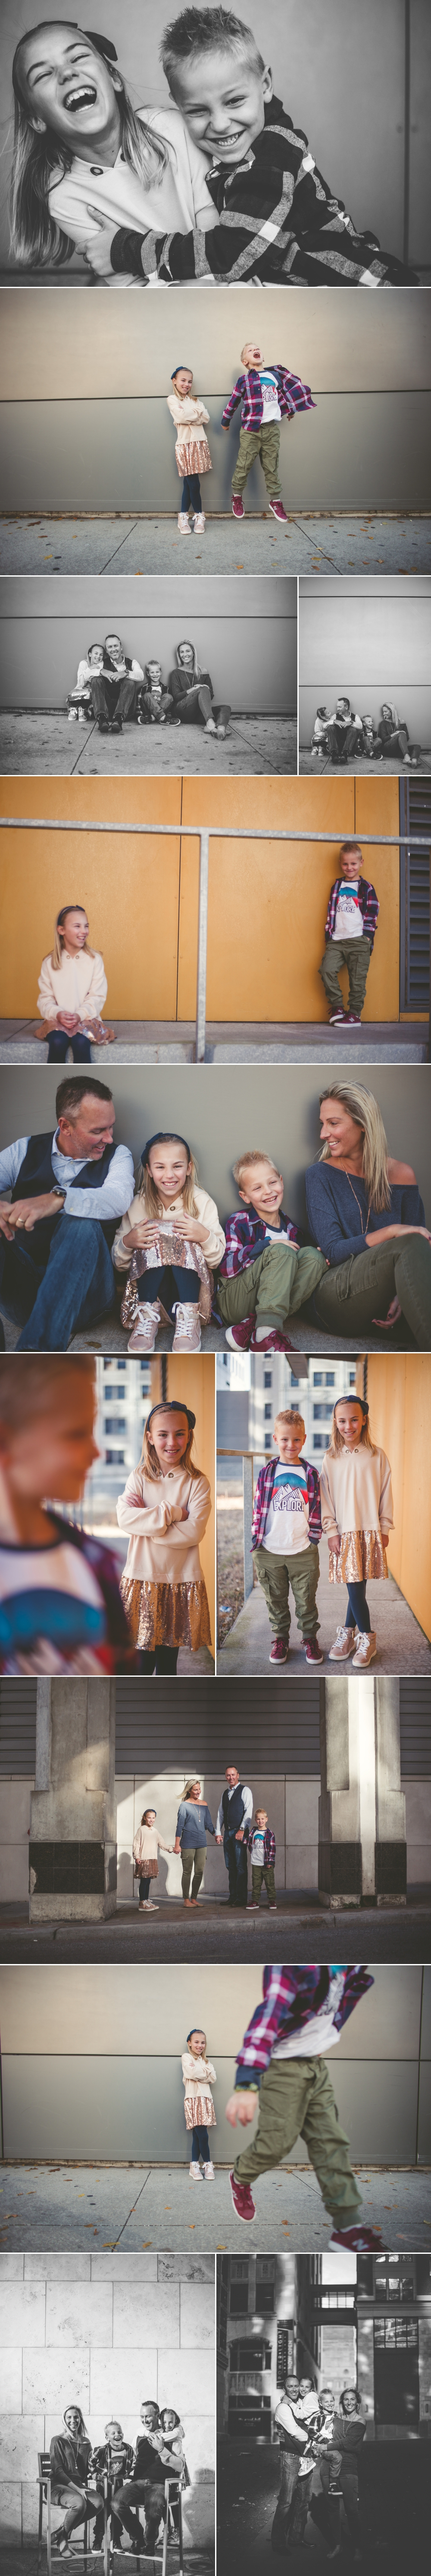 jason_domingues_photography_kansas_city_family_portraits_kc_session_downtown_best_photographer.JPG